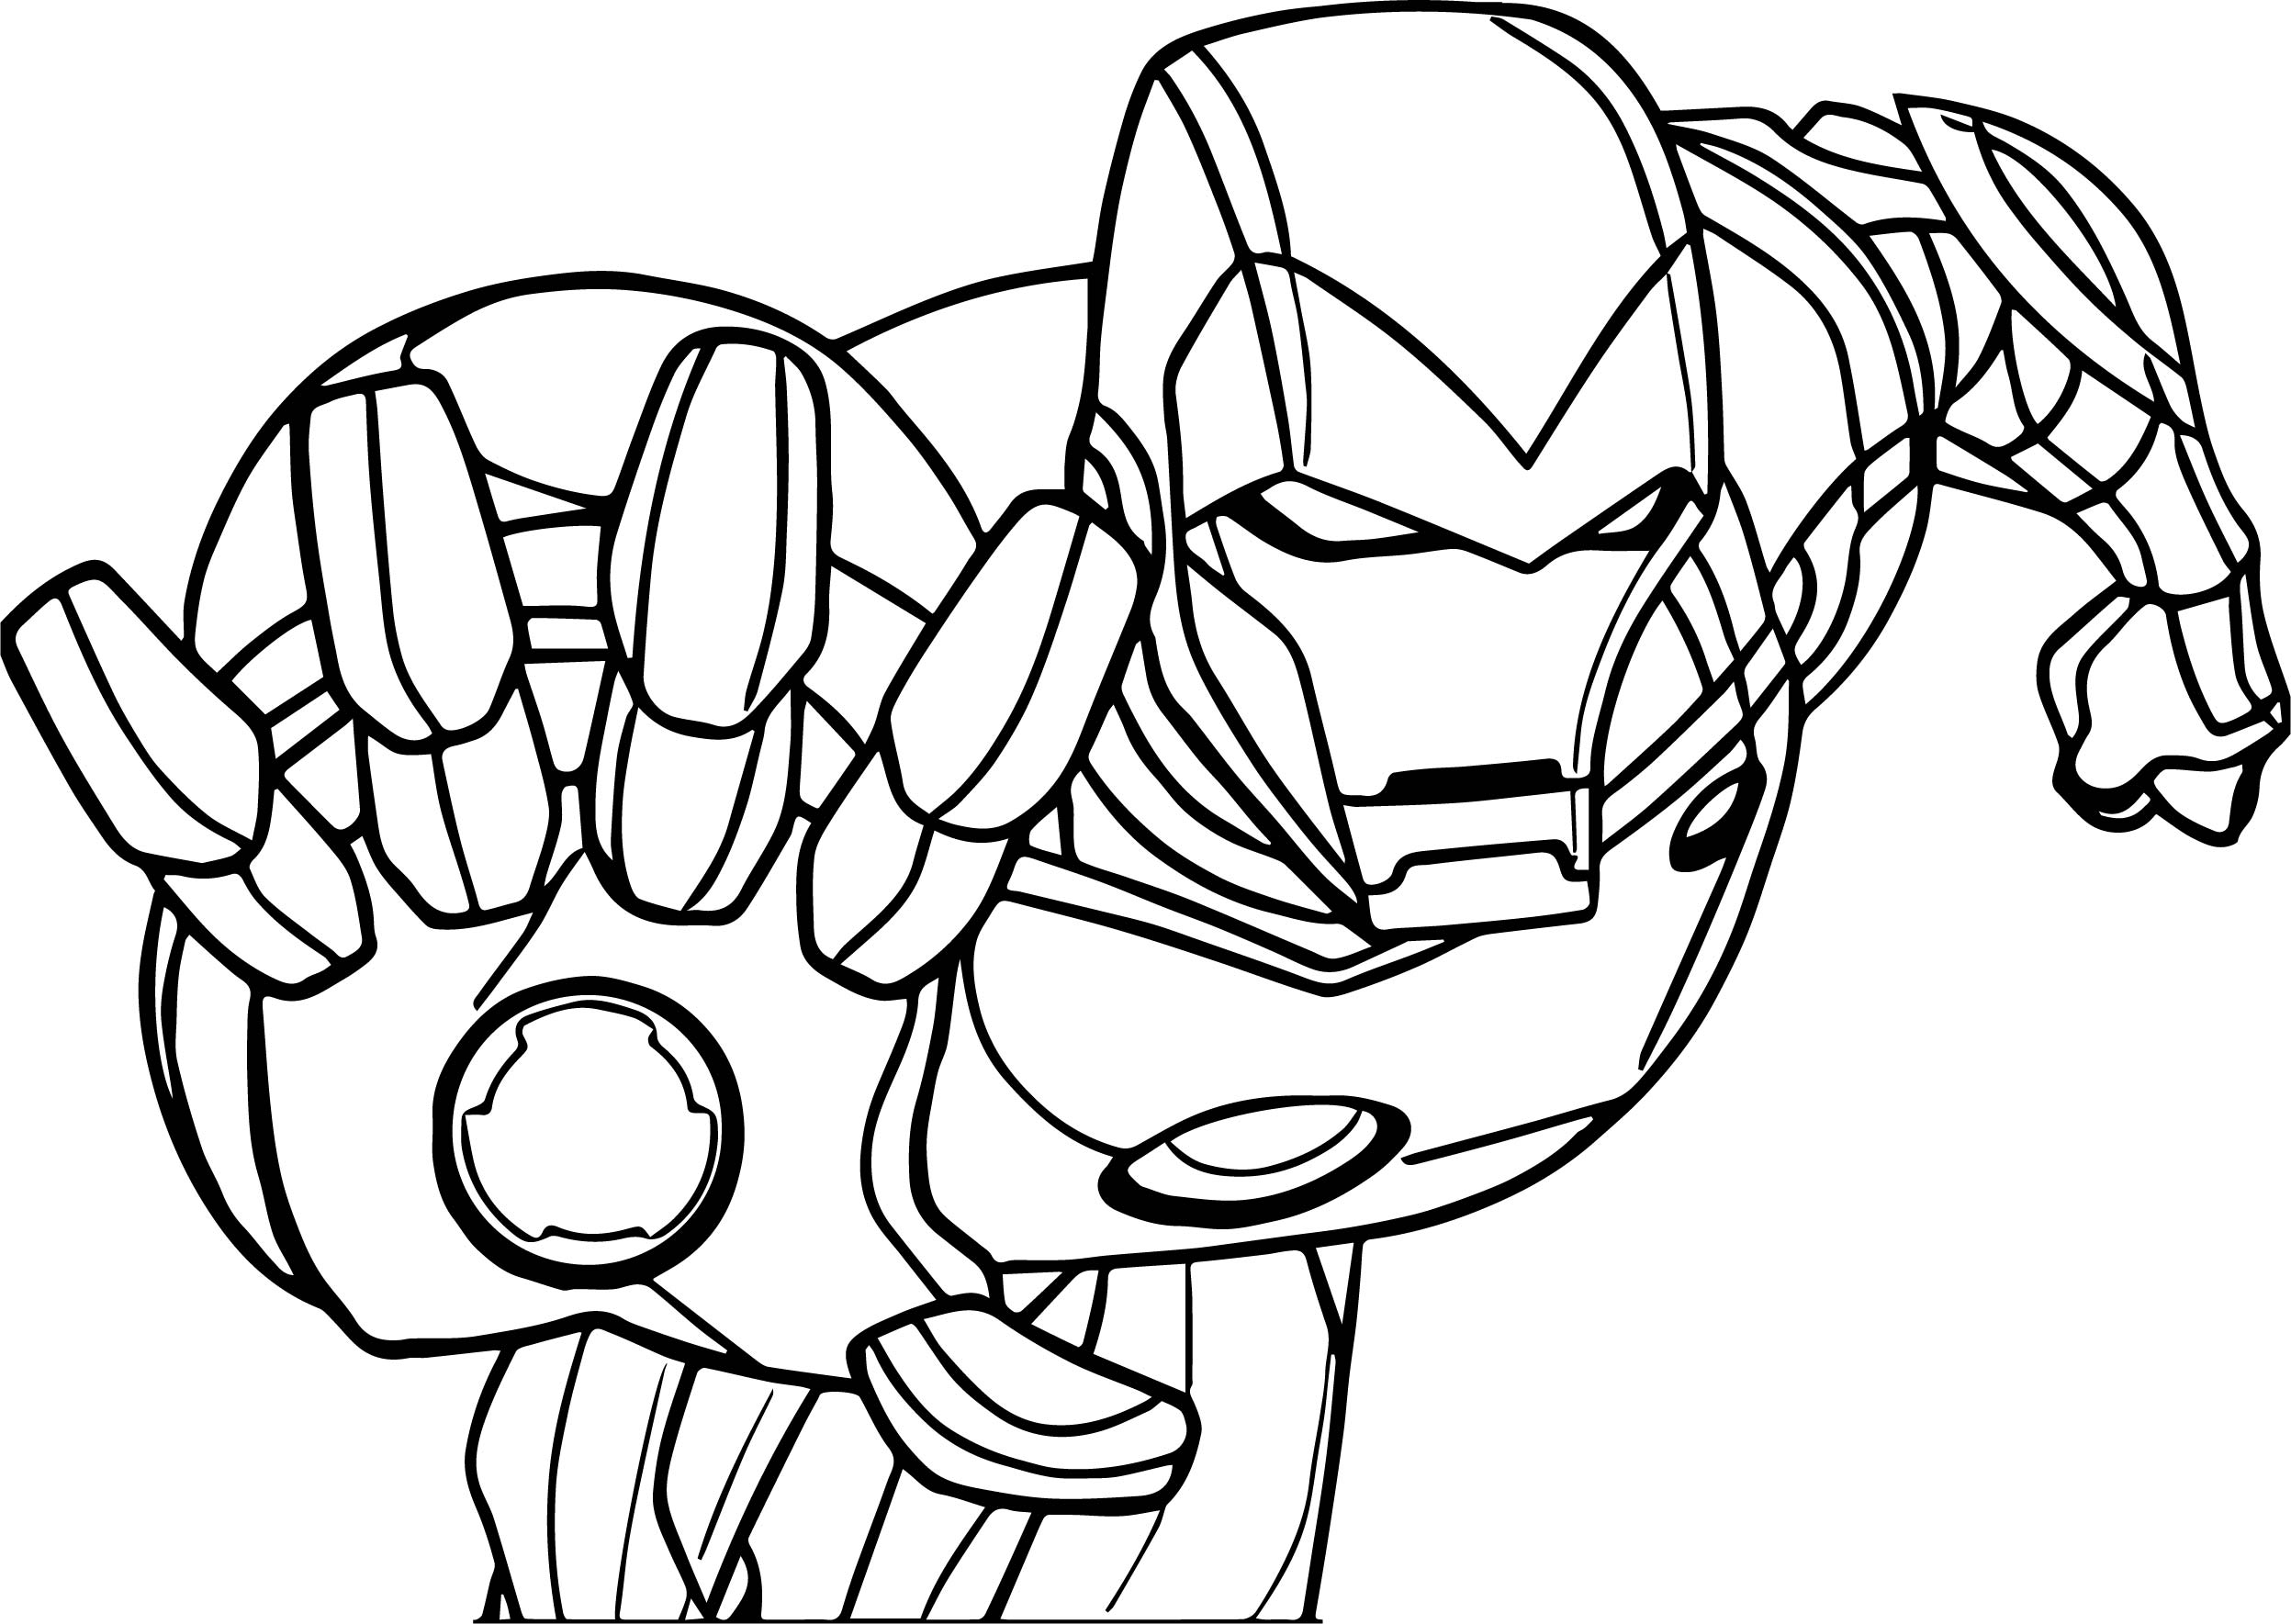 Red Skull Coloring Pages - Costumepartyrun